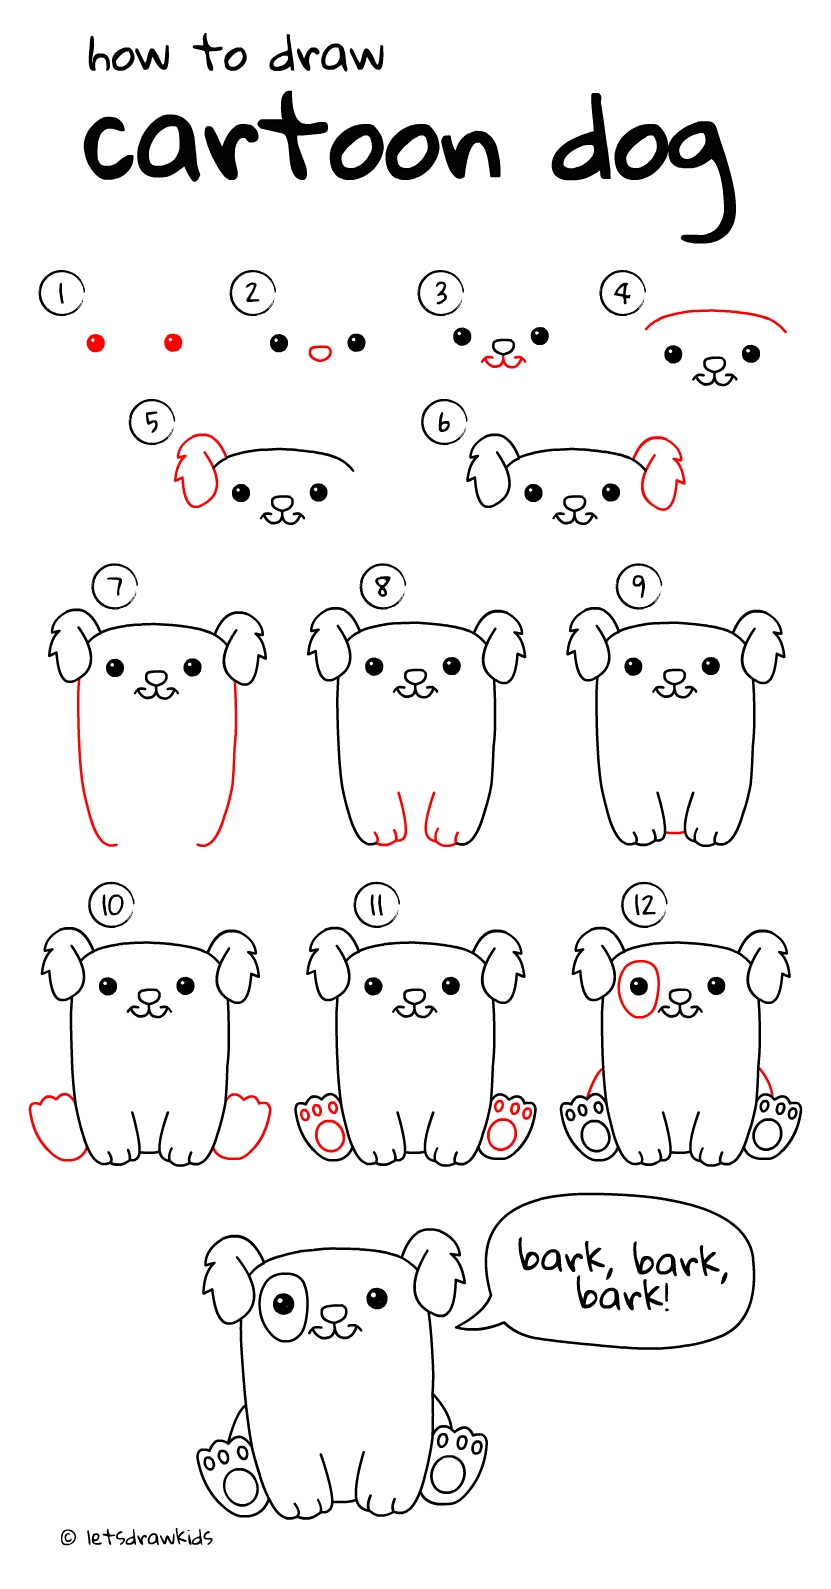 10 Elegant Drawing Ideas For Kids Step By Step how to draw cartoon dog easy drawing stepstep perfect for 2021